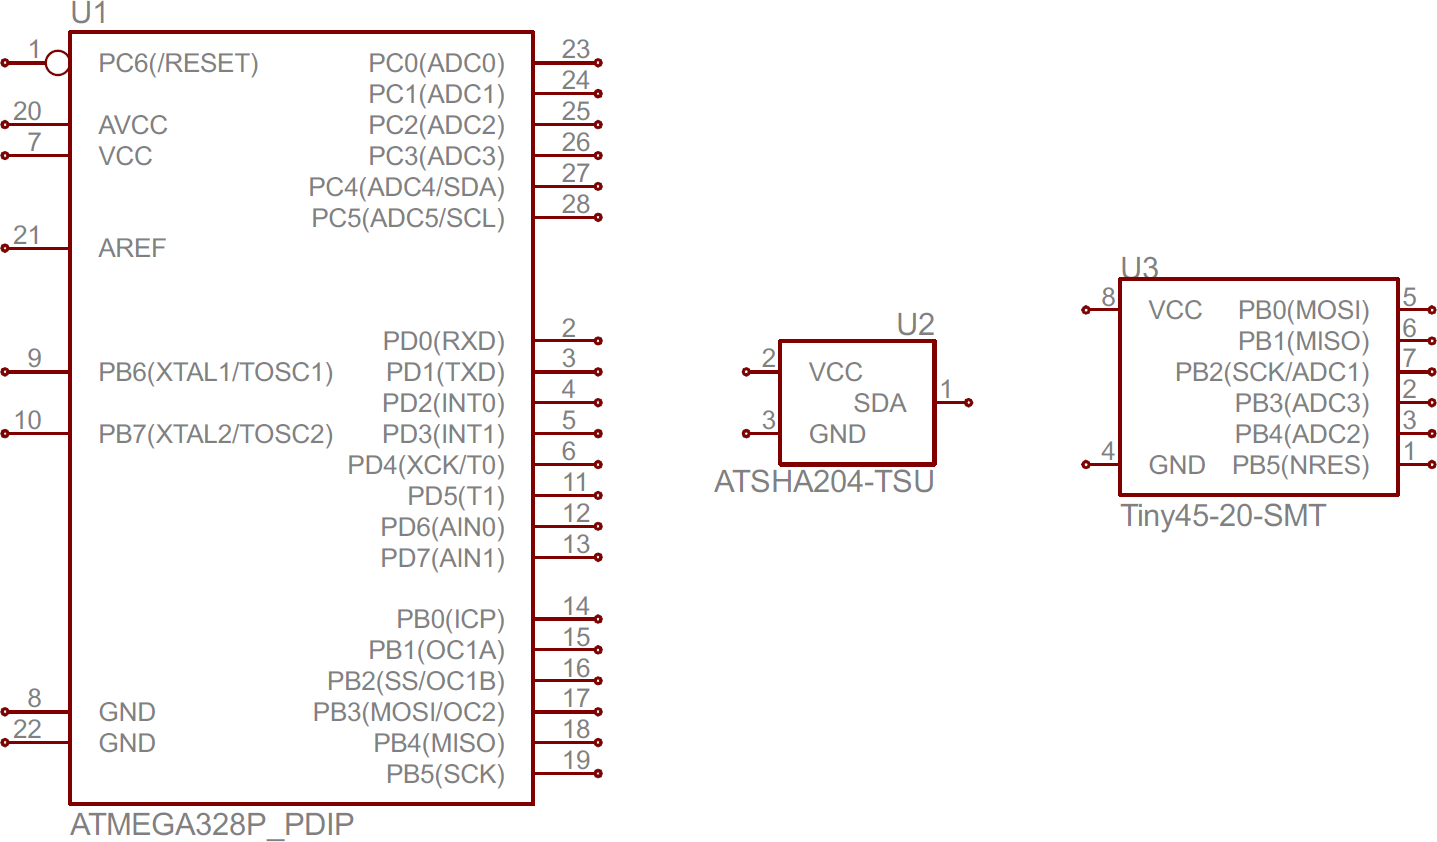 How To Read A Schematic 12v Home Wiring Basics Atmega328 Atsha204 And Attiny45 Ic Symbols